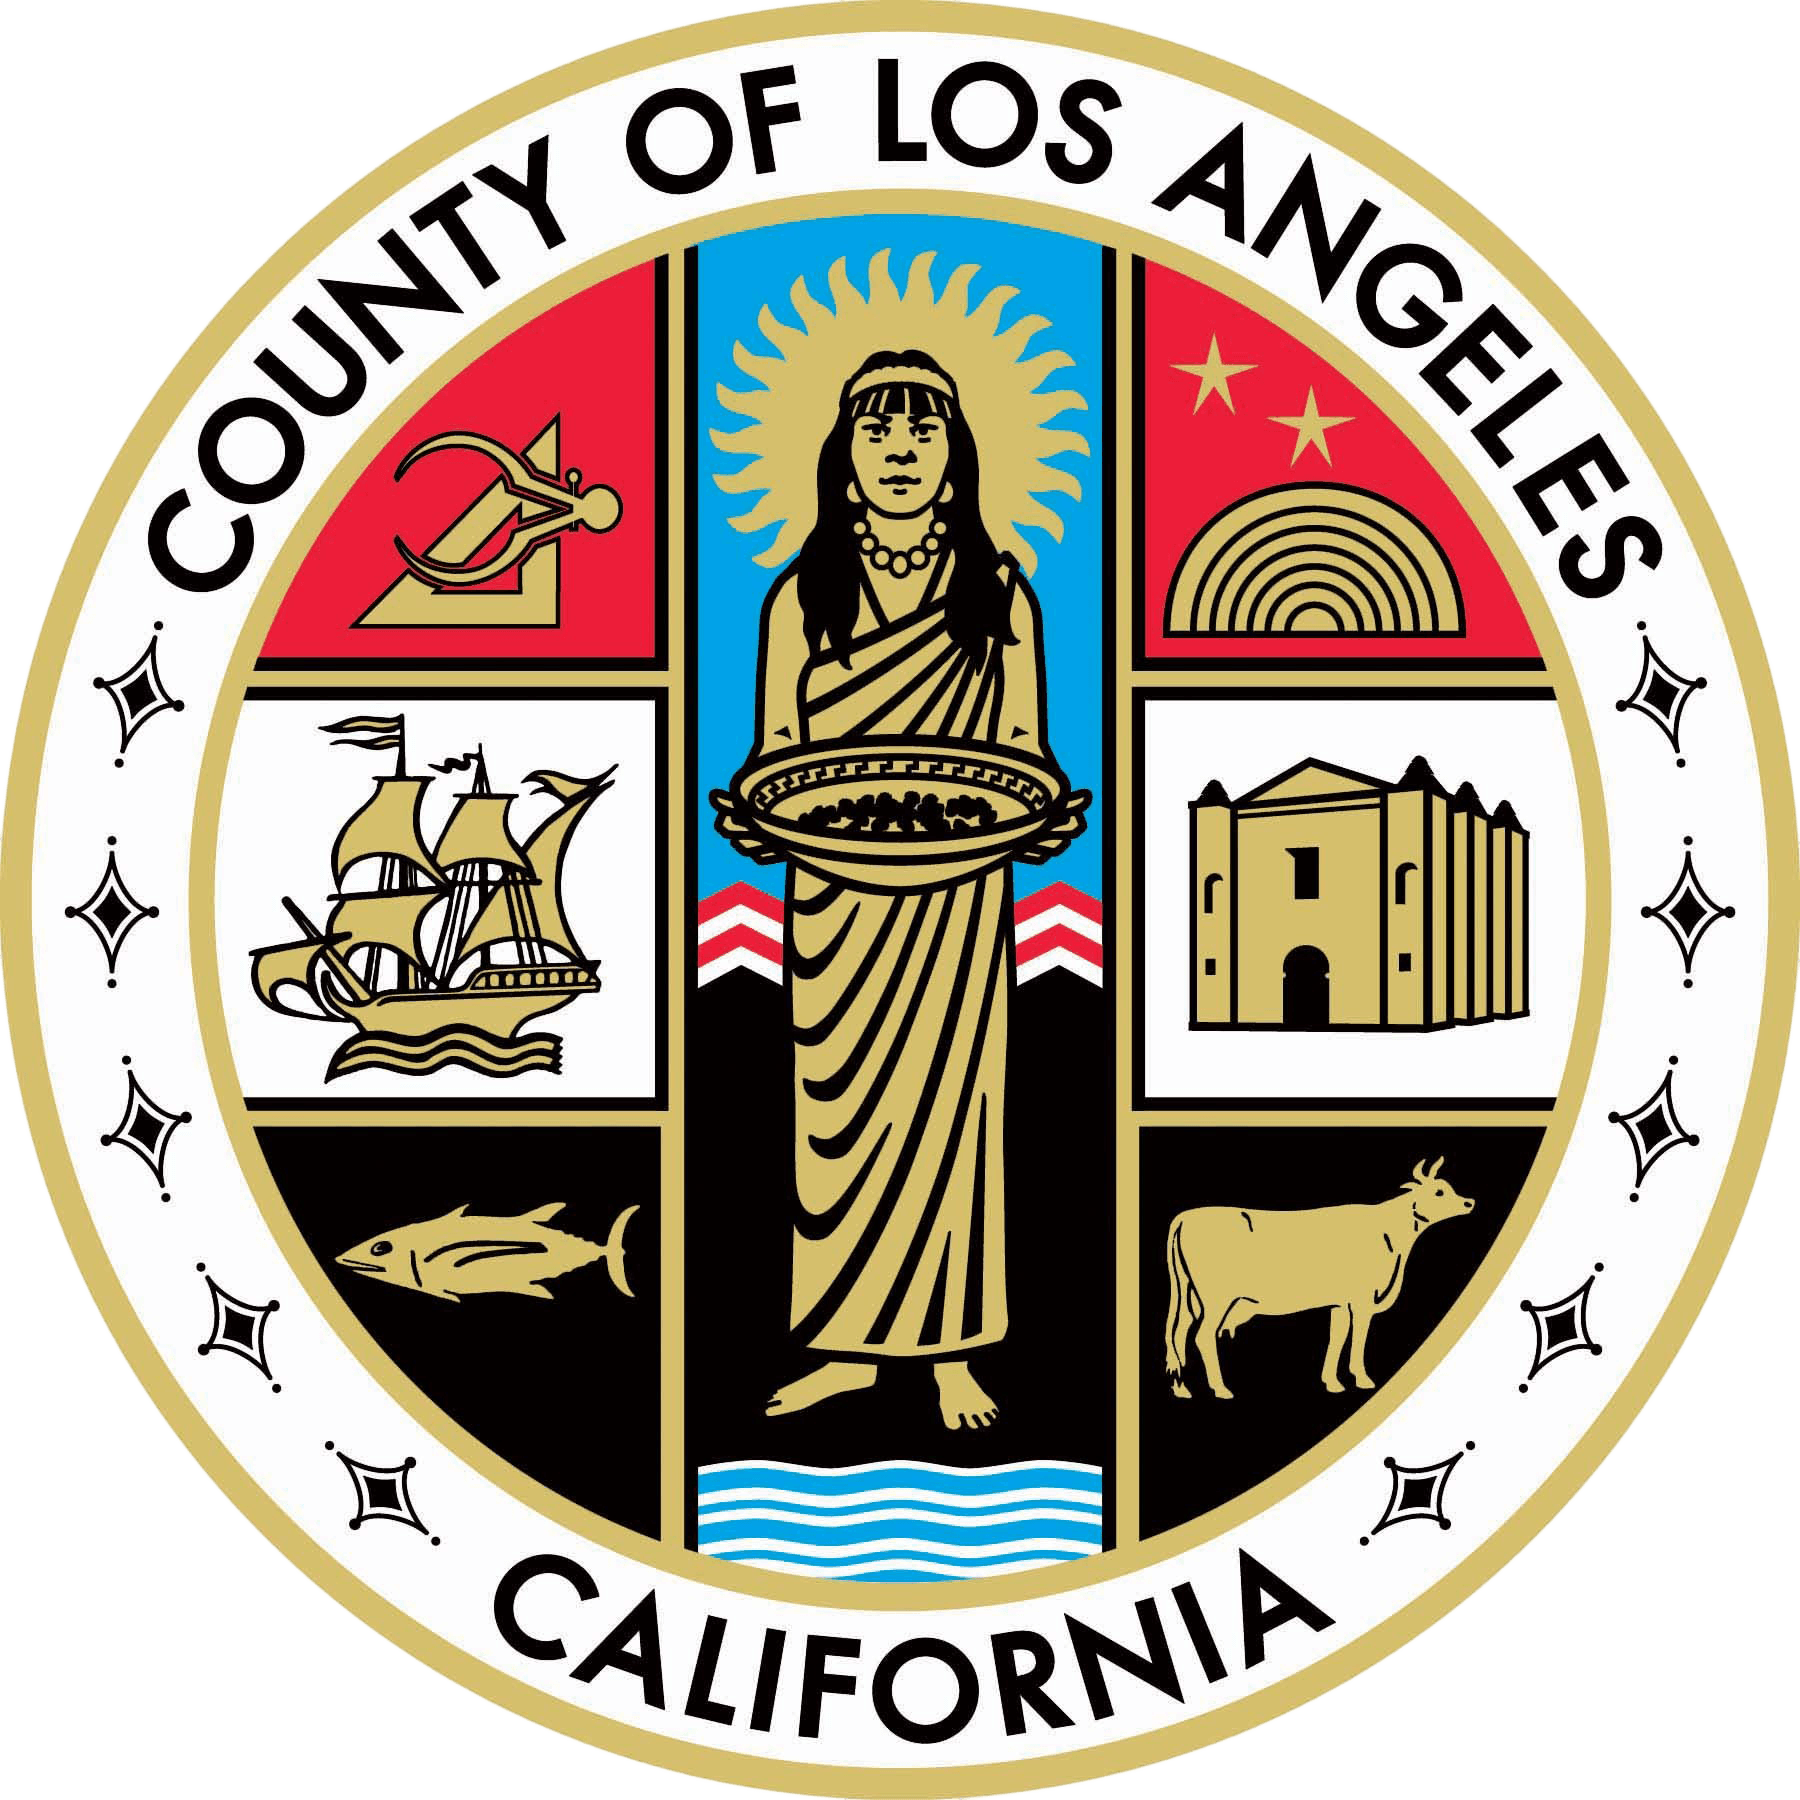 County of Los Angeles California Seal